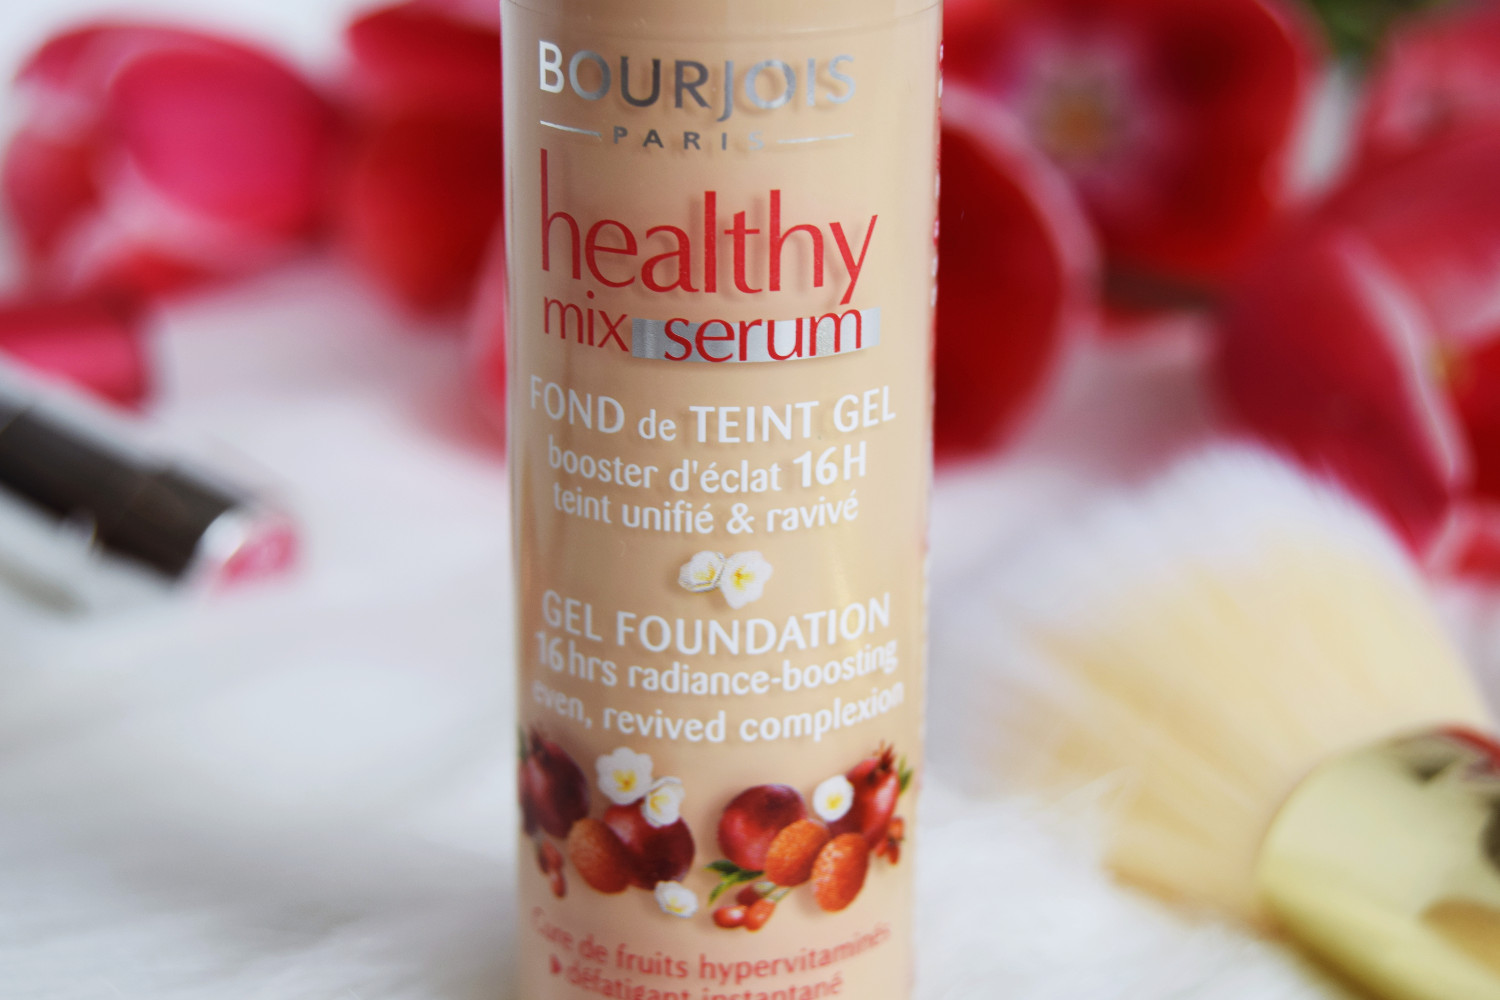 Bourjois_Paris_Healthy_mix_serum_review_Zalabell_beauty_5